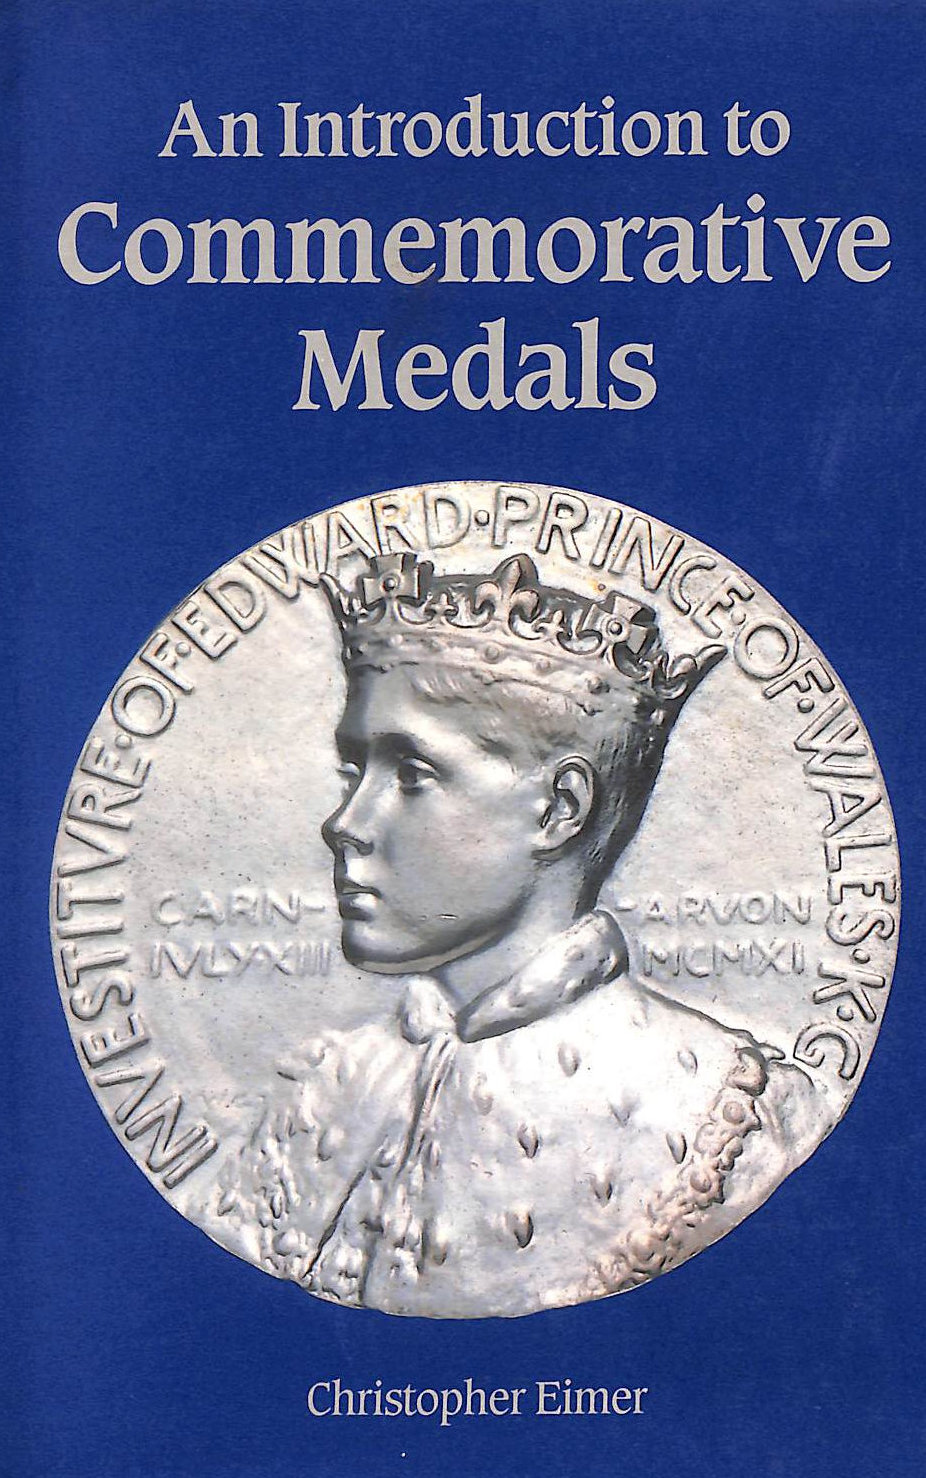 Image for An Introduction to Commemorative Medals